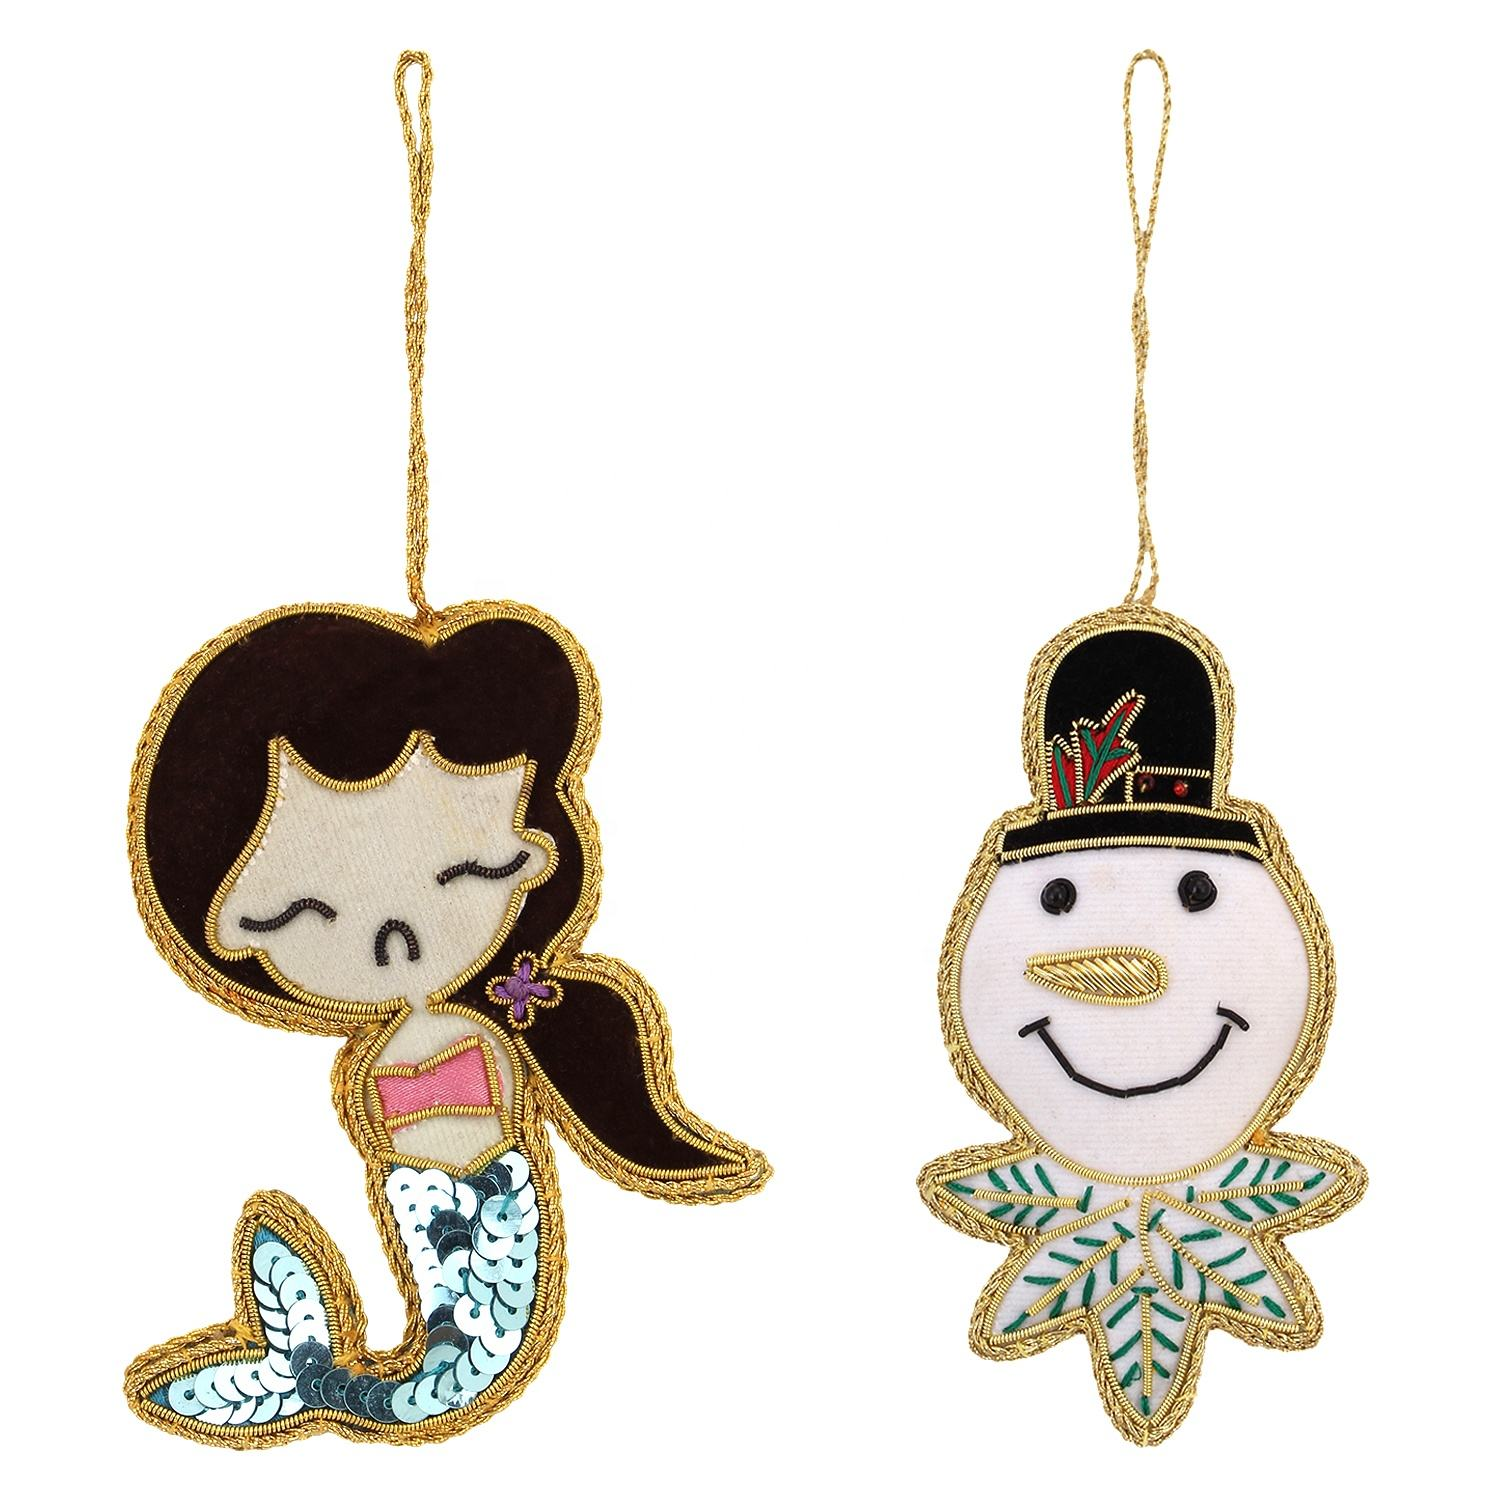 Mermaid Joker Shape Christmas Tree Decorations gift items Hanging Ornament